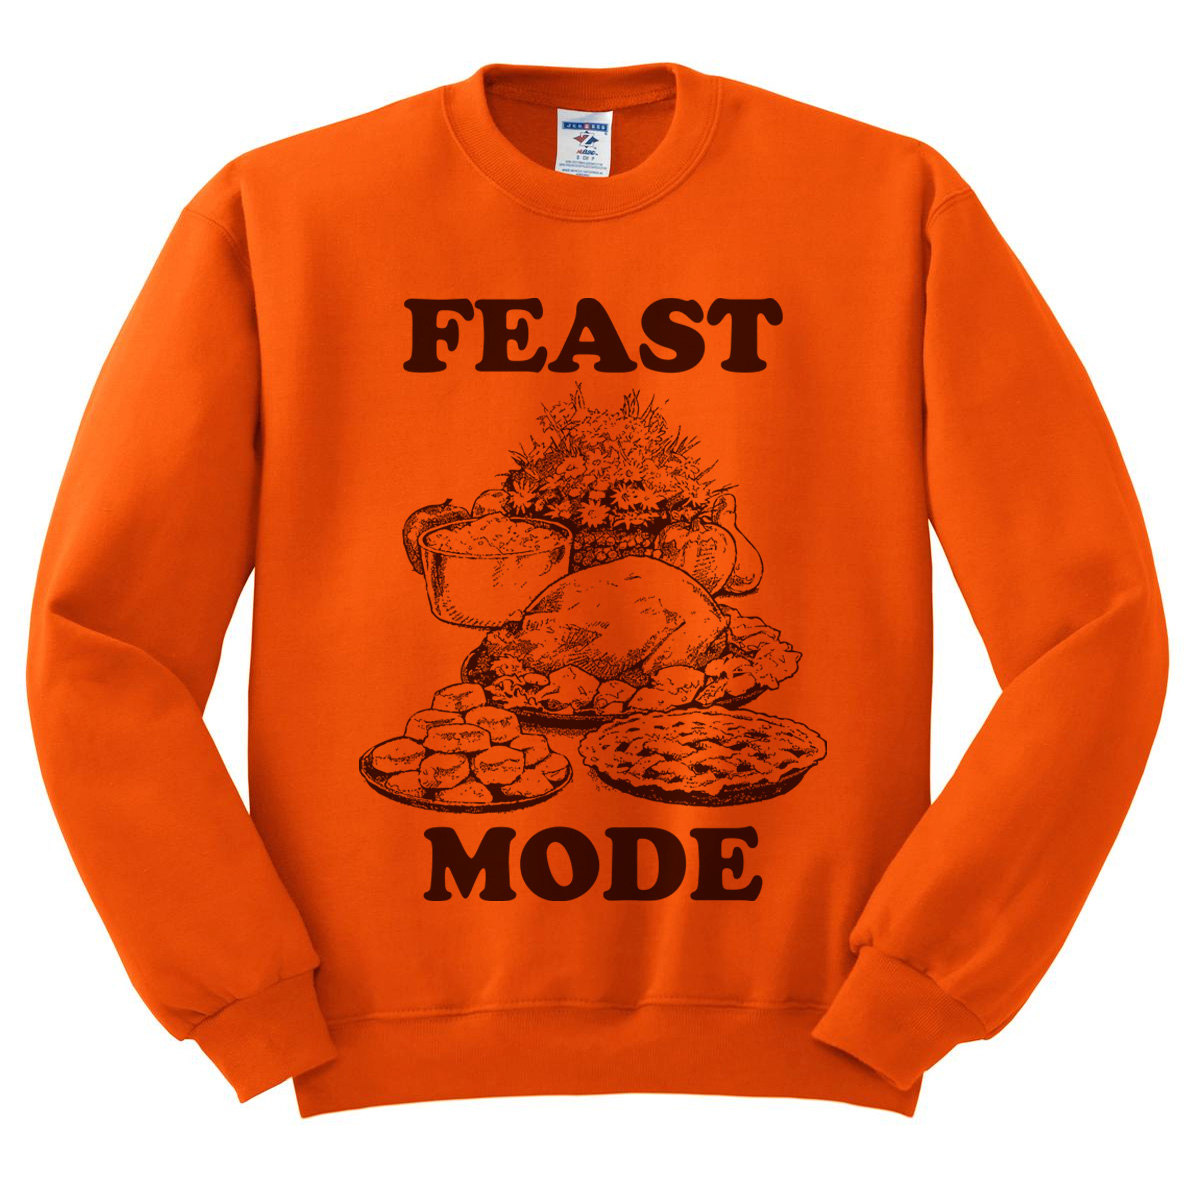 quality design 95625 60200 Orange Crewneck Feast Mode Thanksgiving Sweatshirt Sweater Jumper Pullover  Beast Mode